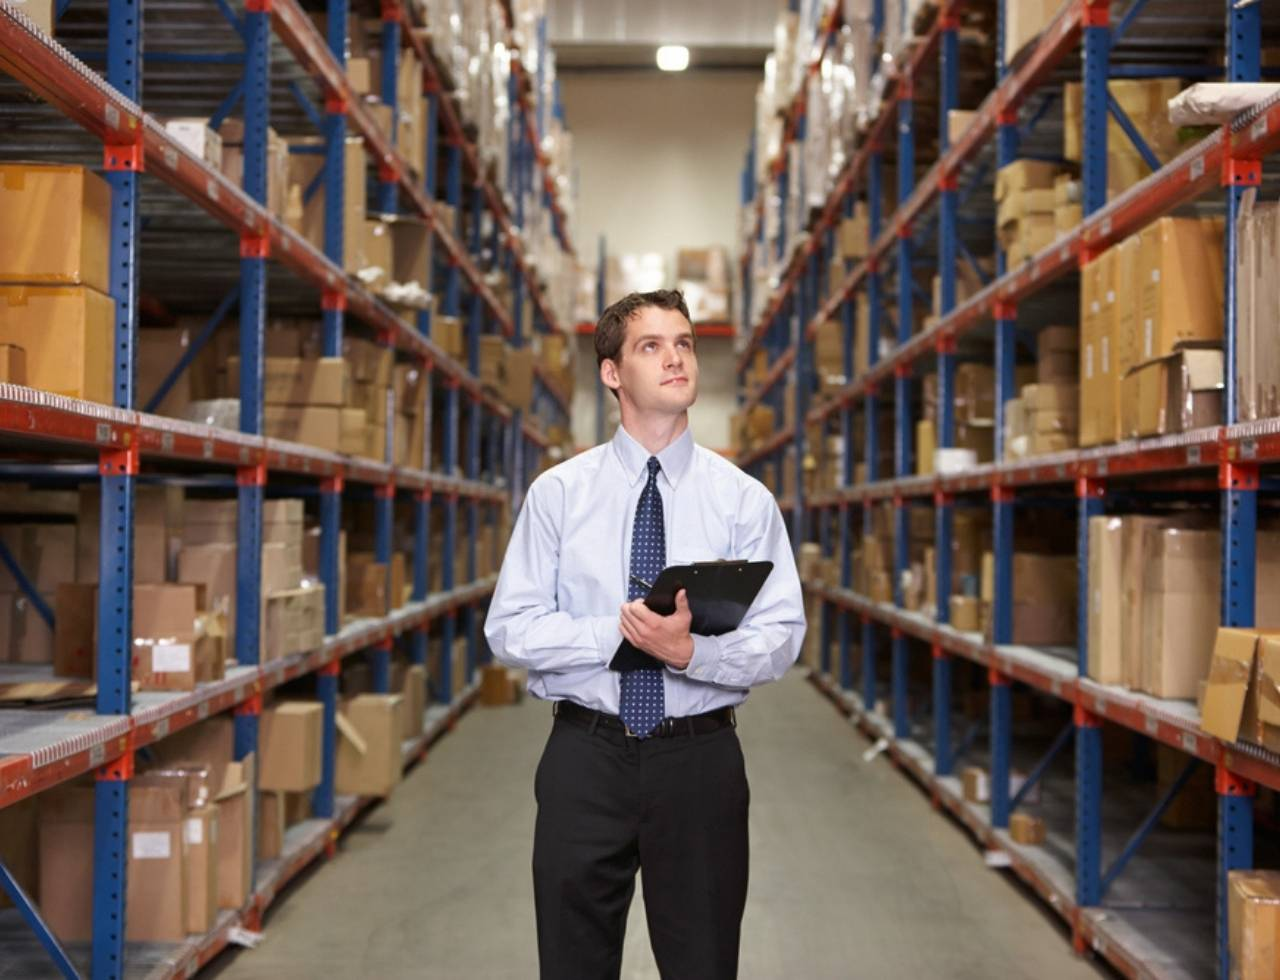 Inventory Management Software for Small Business